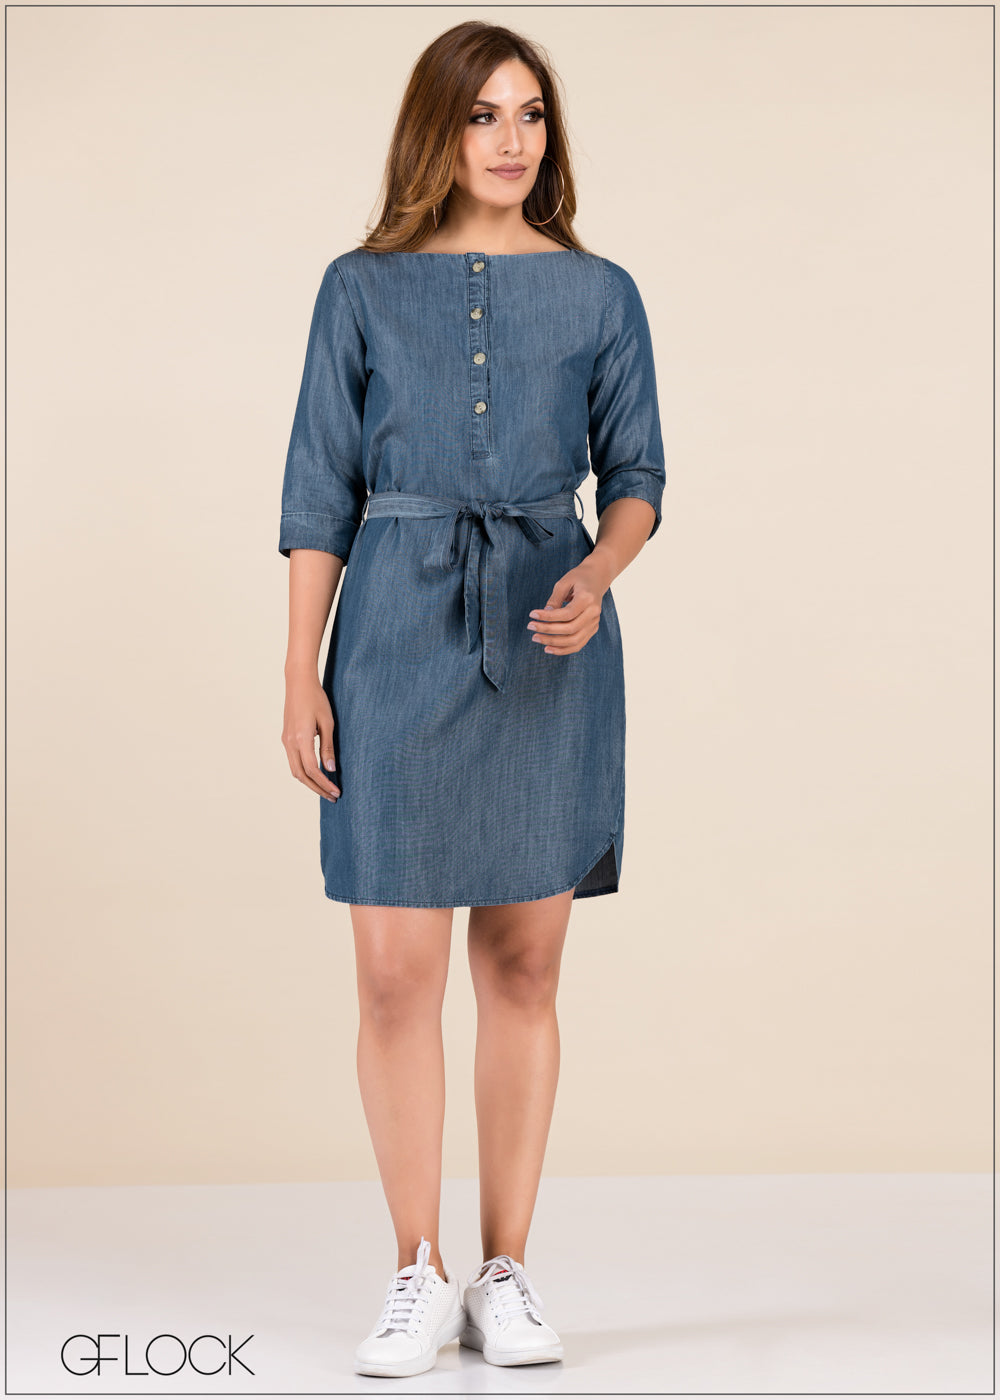 Front Buttoned Shift Dress - GFLOCK.LK